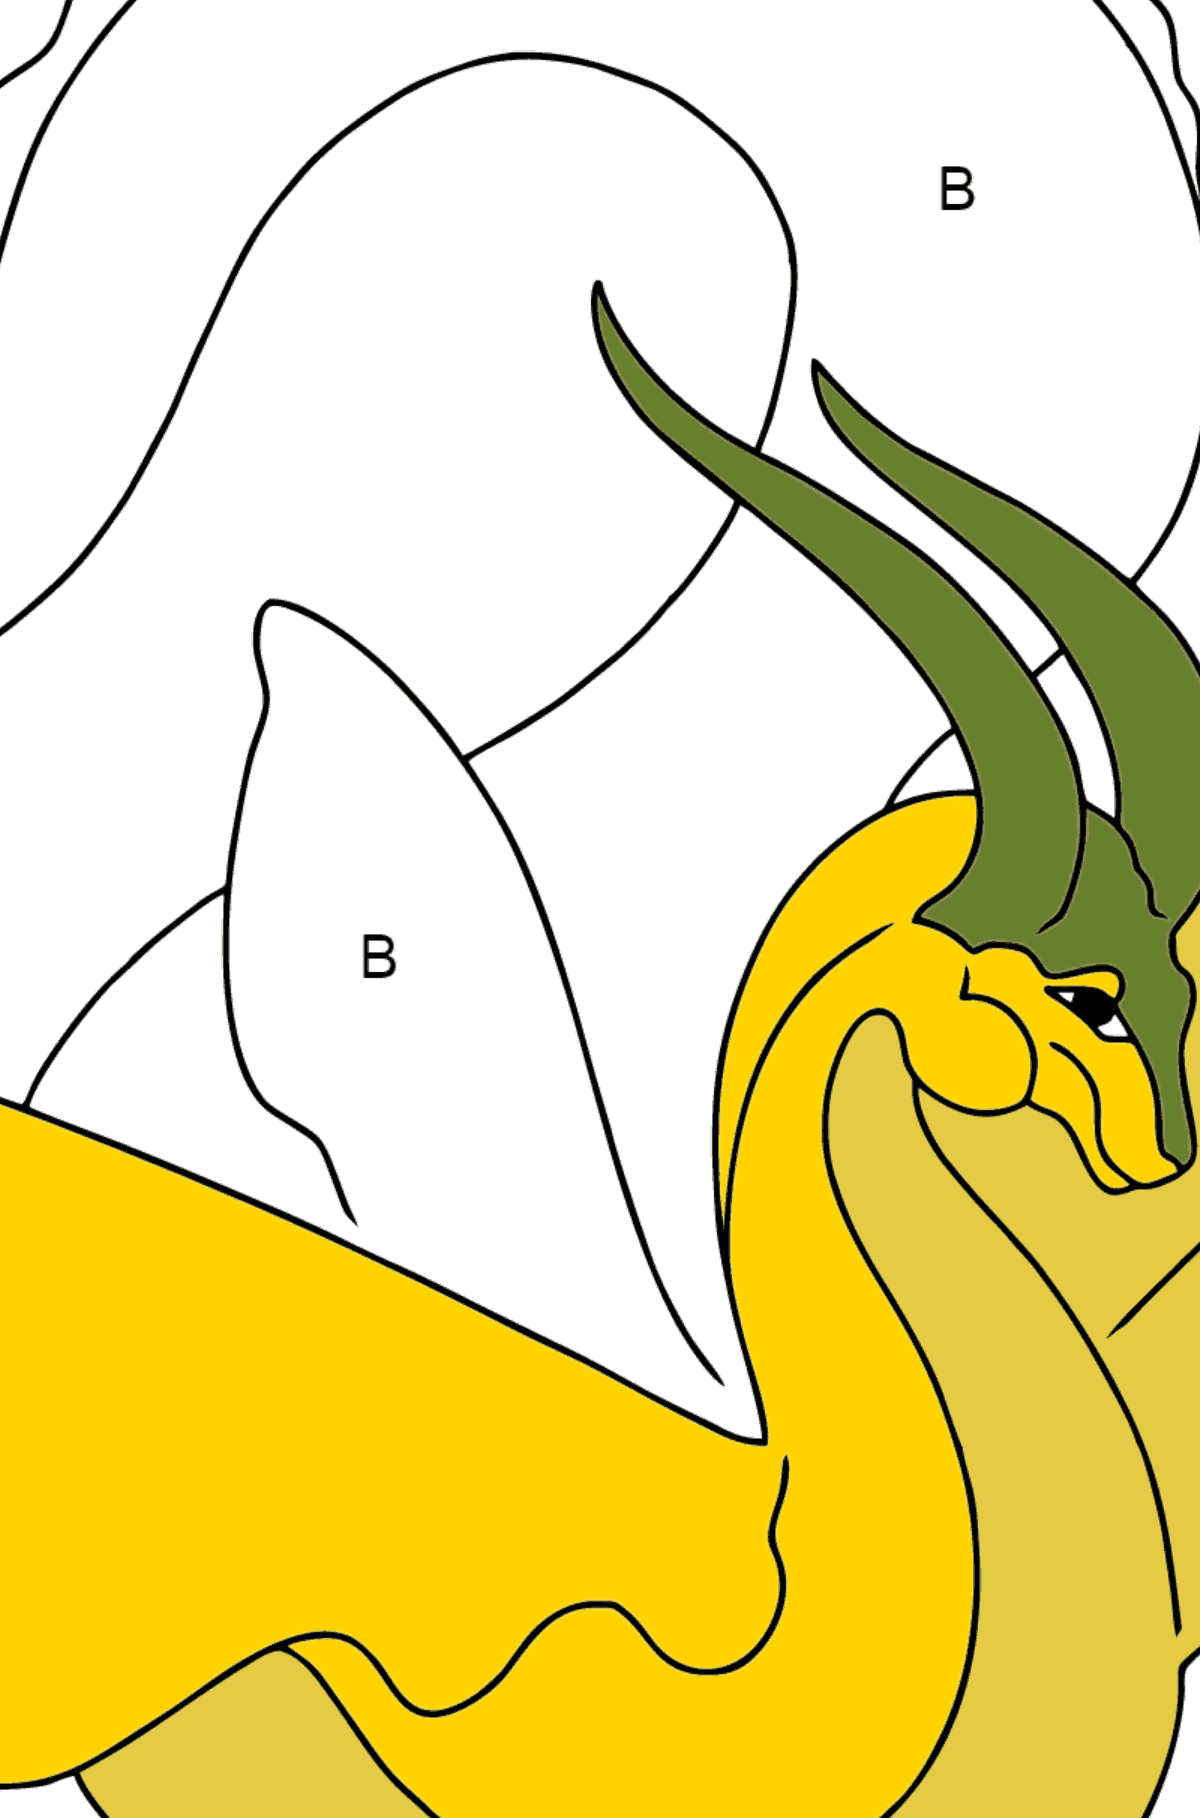 Coloring Page - A Dragon with Yellow Wings - Coloring by Letters for Children